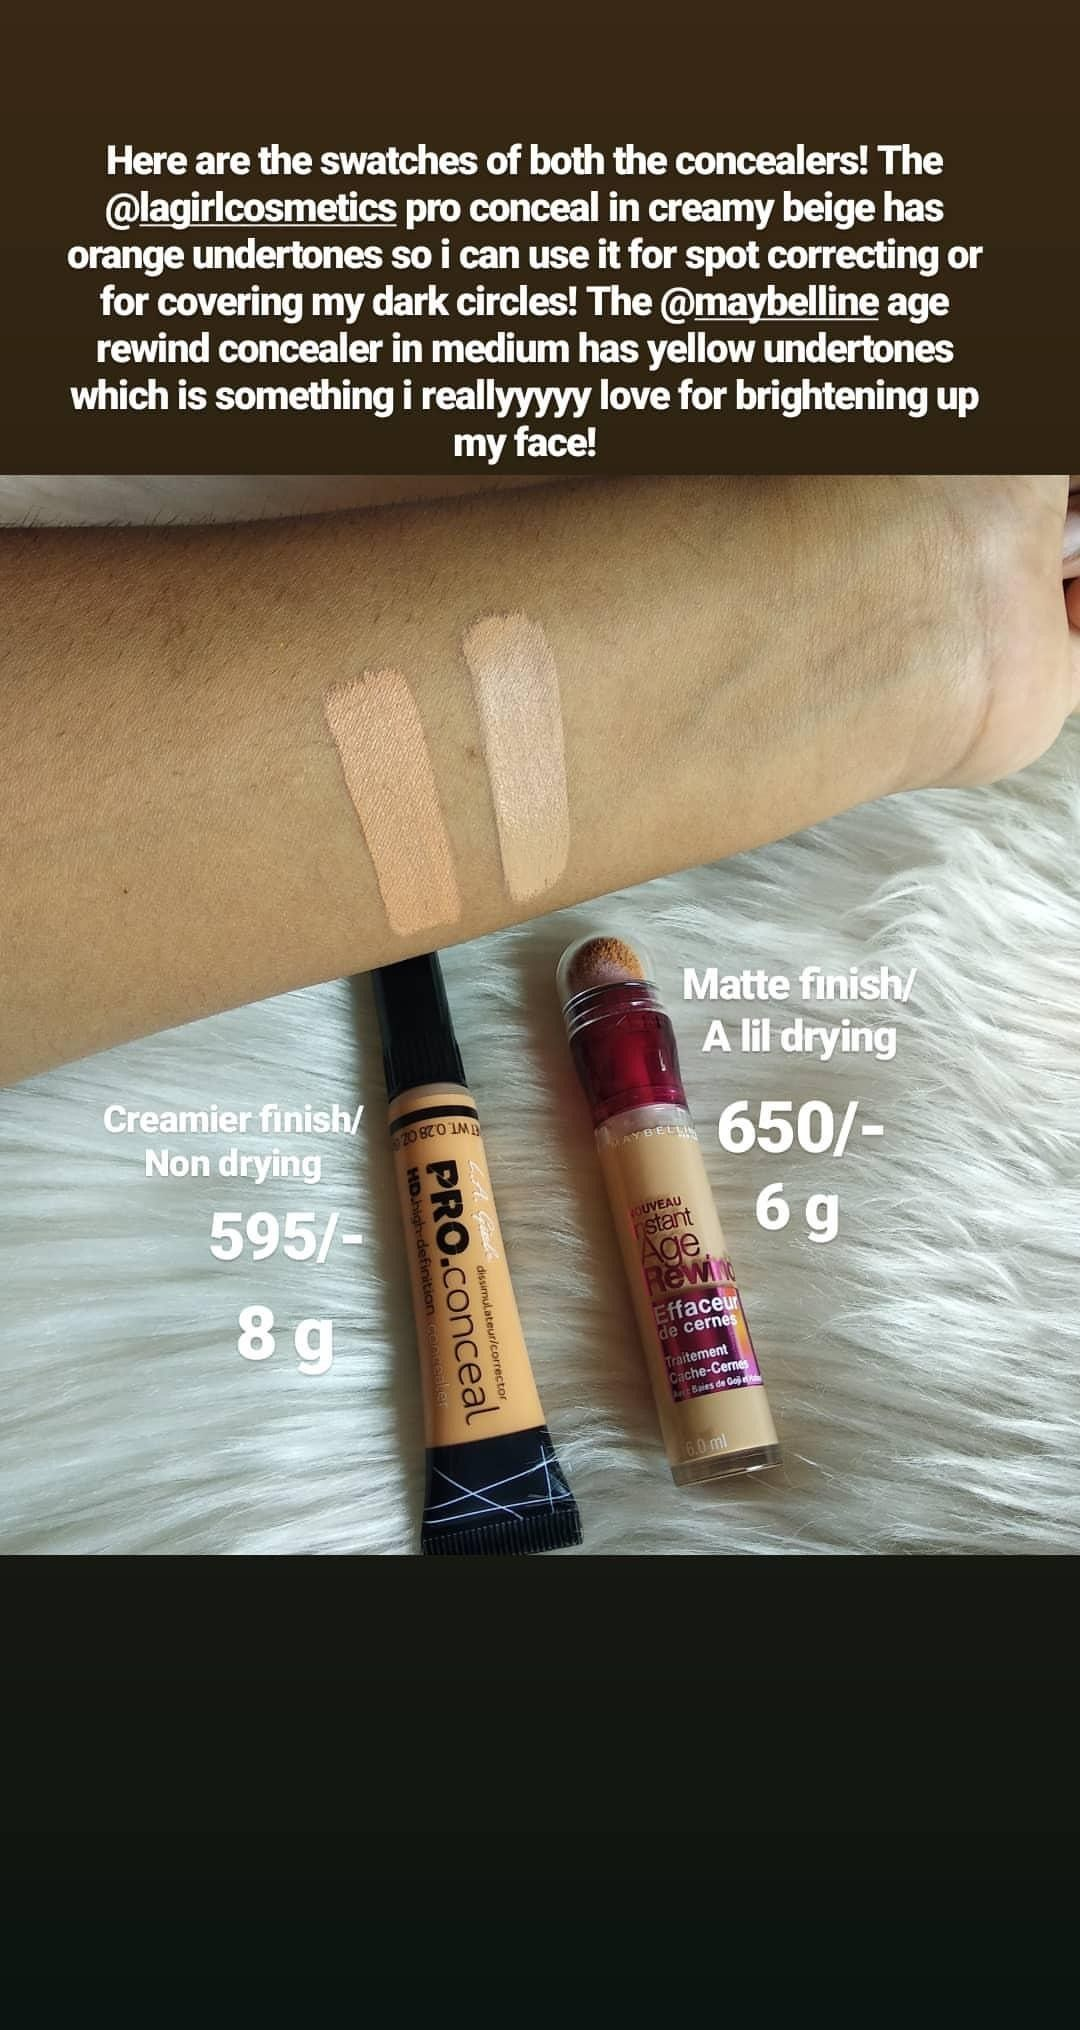 Swatches of LA girl pro conceal in creamy beige